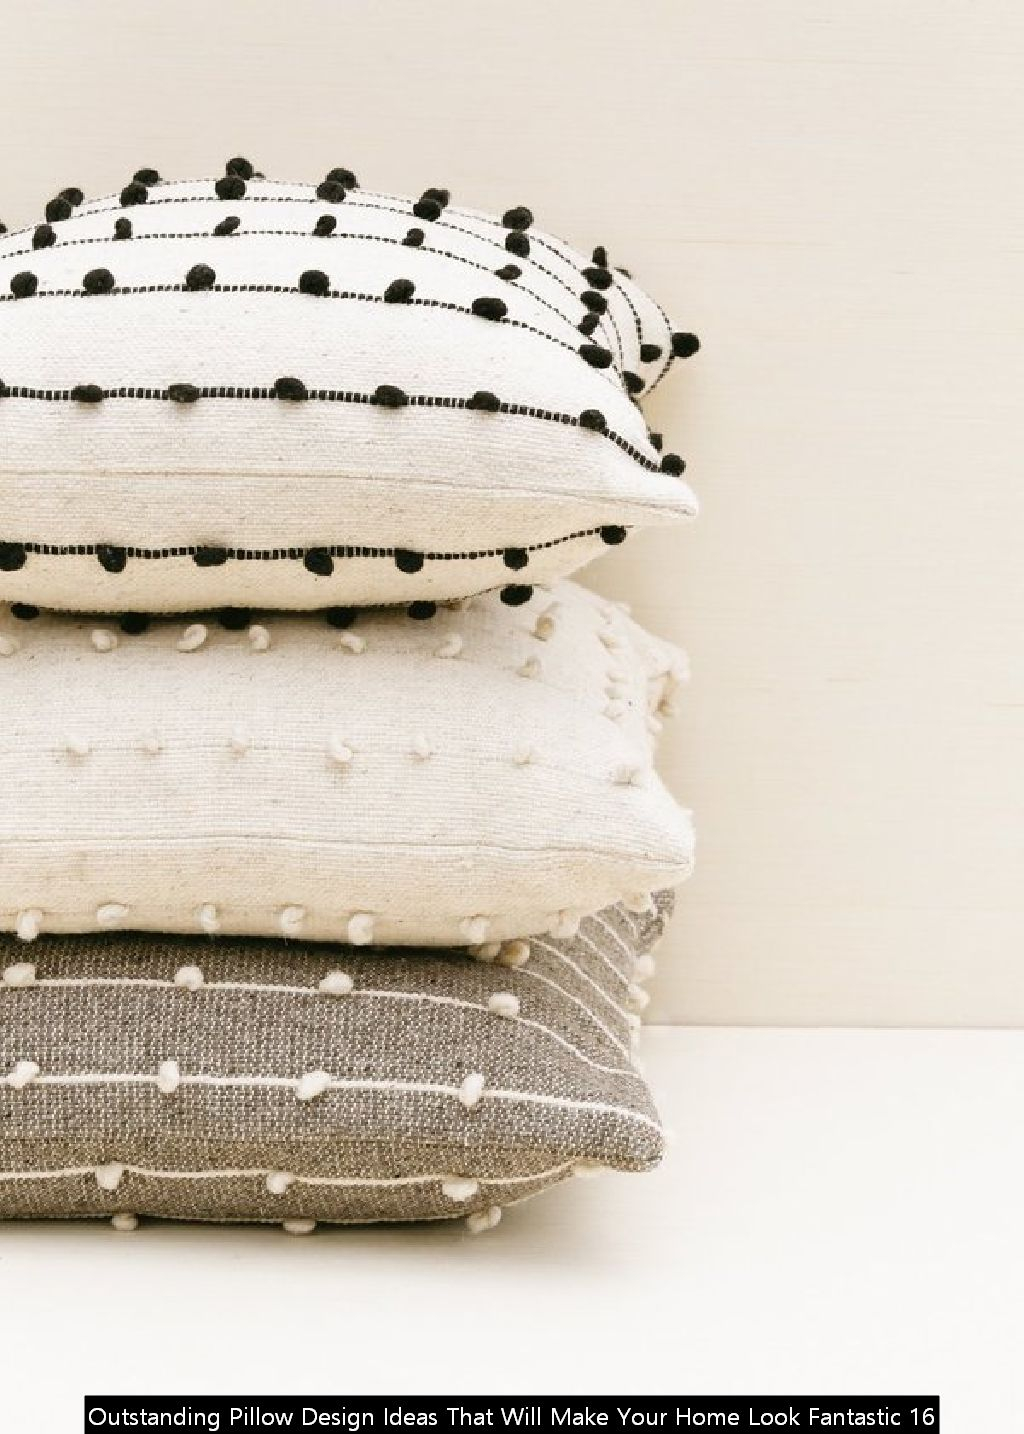 Outstanding Pillow Design Ideas That Will Make Your Home Look Fantastic 16